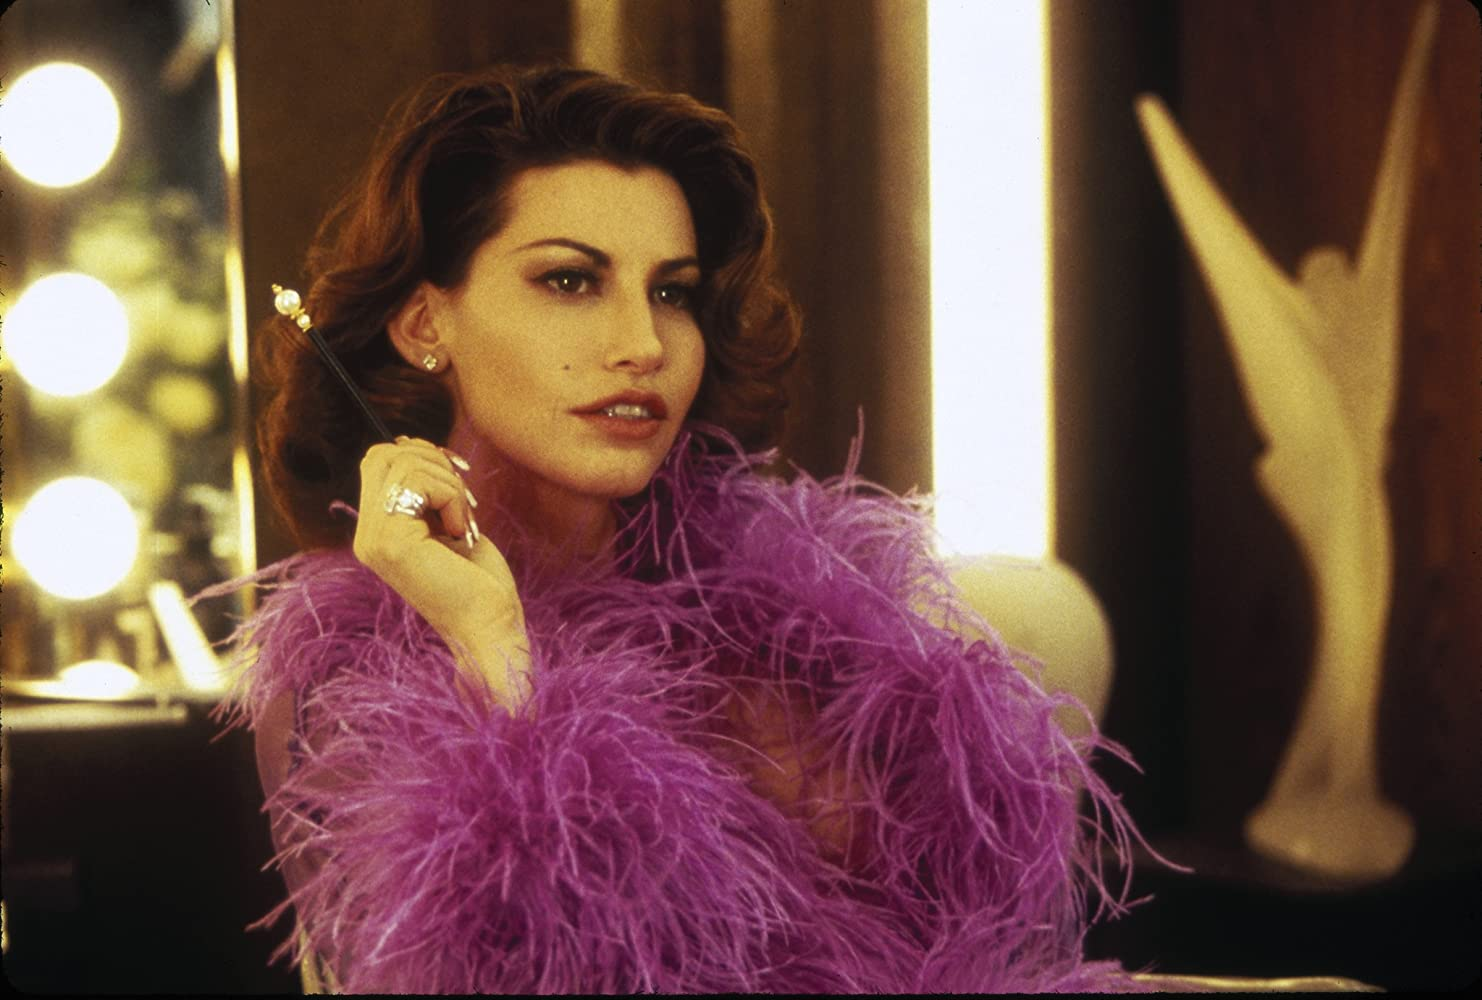 Showgirls (1995). Cristal, a brunette white woman in her early thirties, reclines on a chair in the dressing room, a cigarette holder in her hand. She wears a feathery purple top and has immaculate makeup. She looks intrigued, regarding something out of the frame.